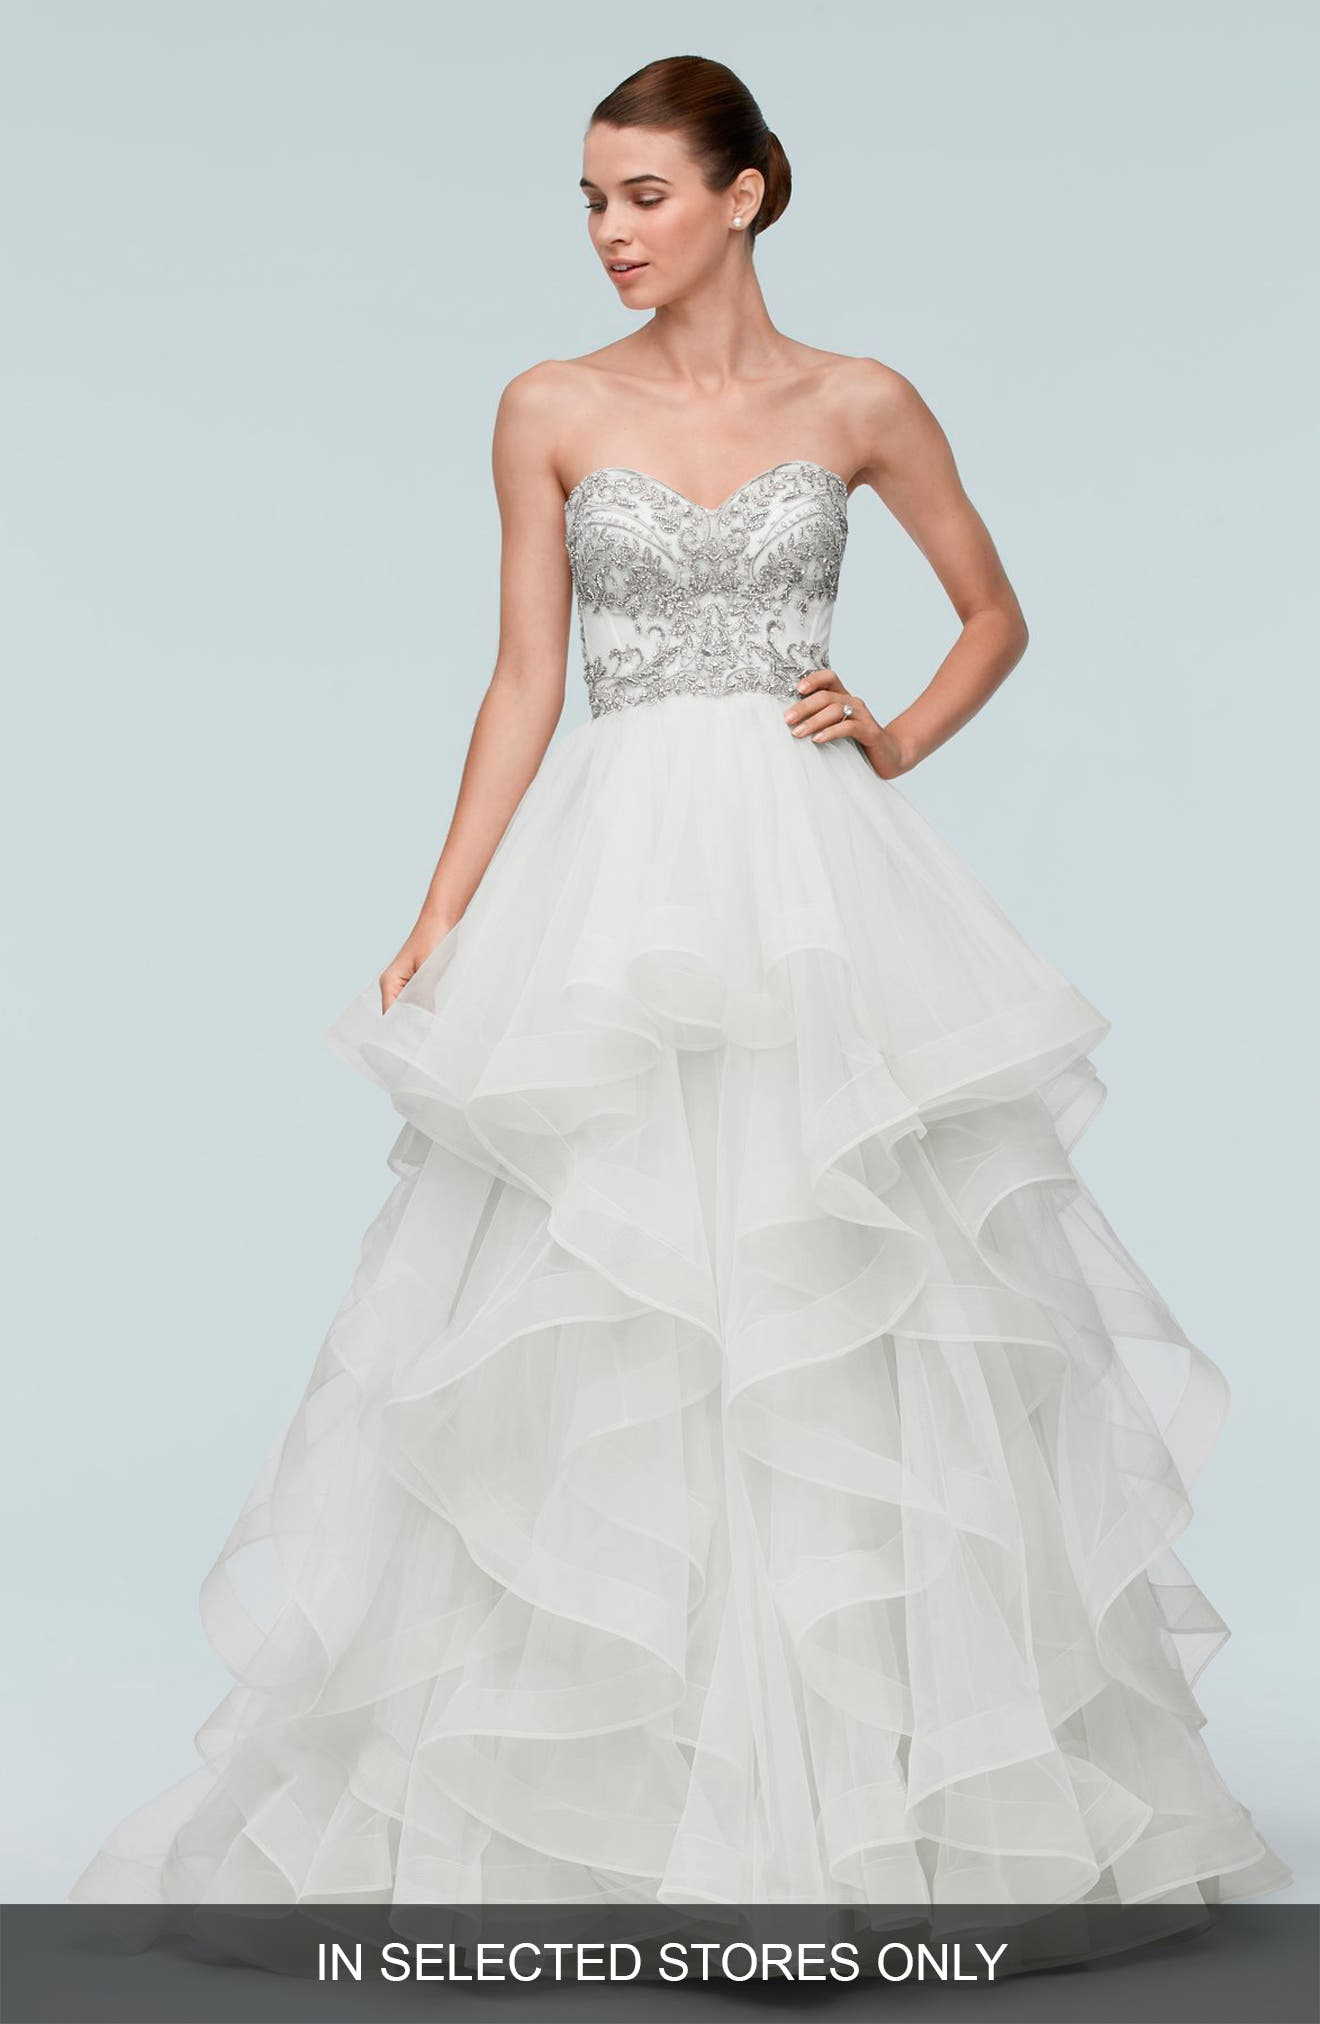 Meri Beaded Strapless Layered Tulle Gown,                             Alternate thumbnail 3, color,                             907